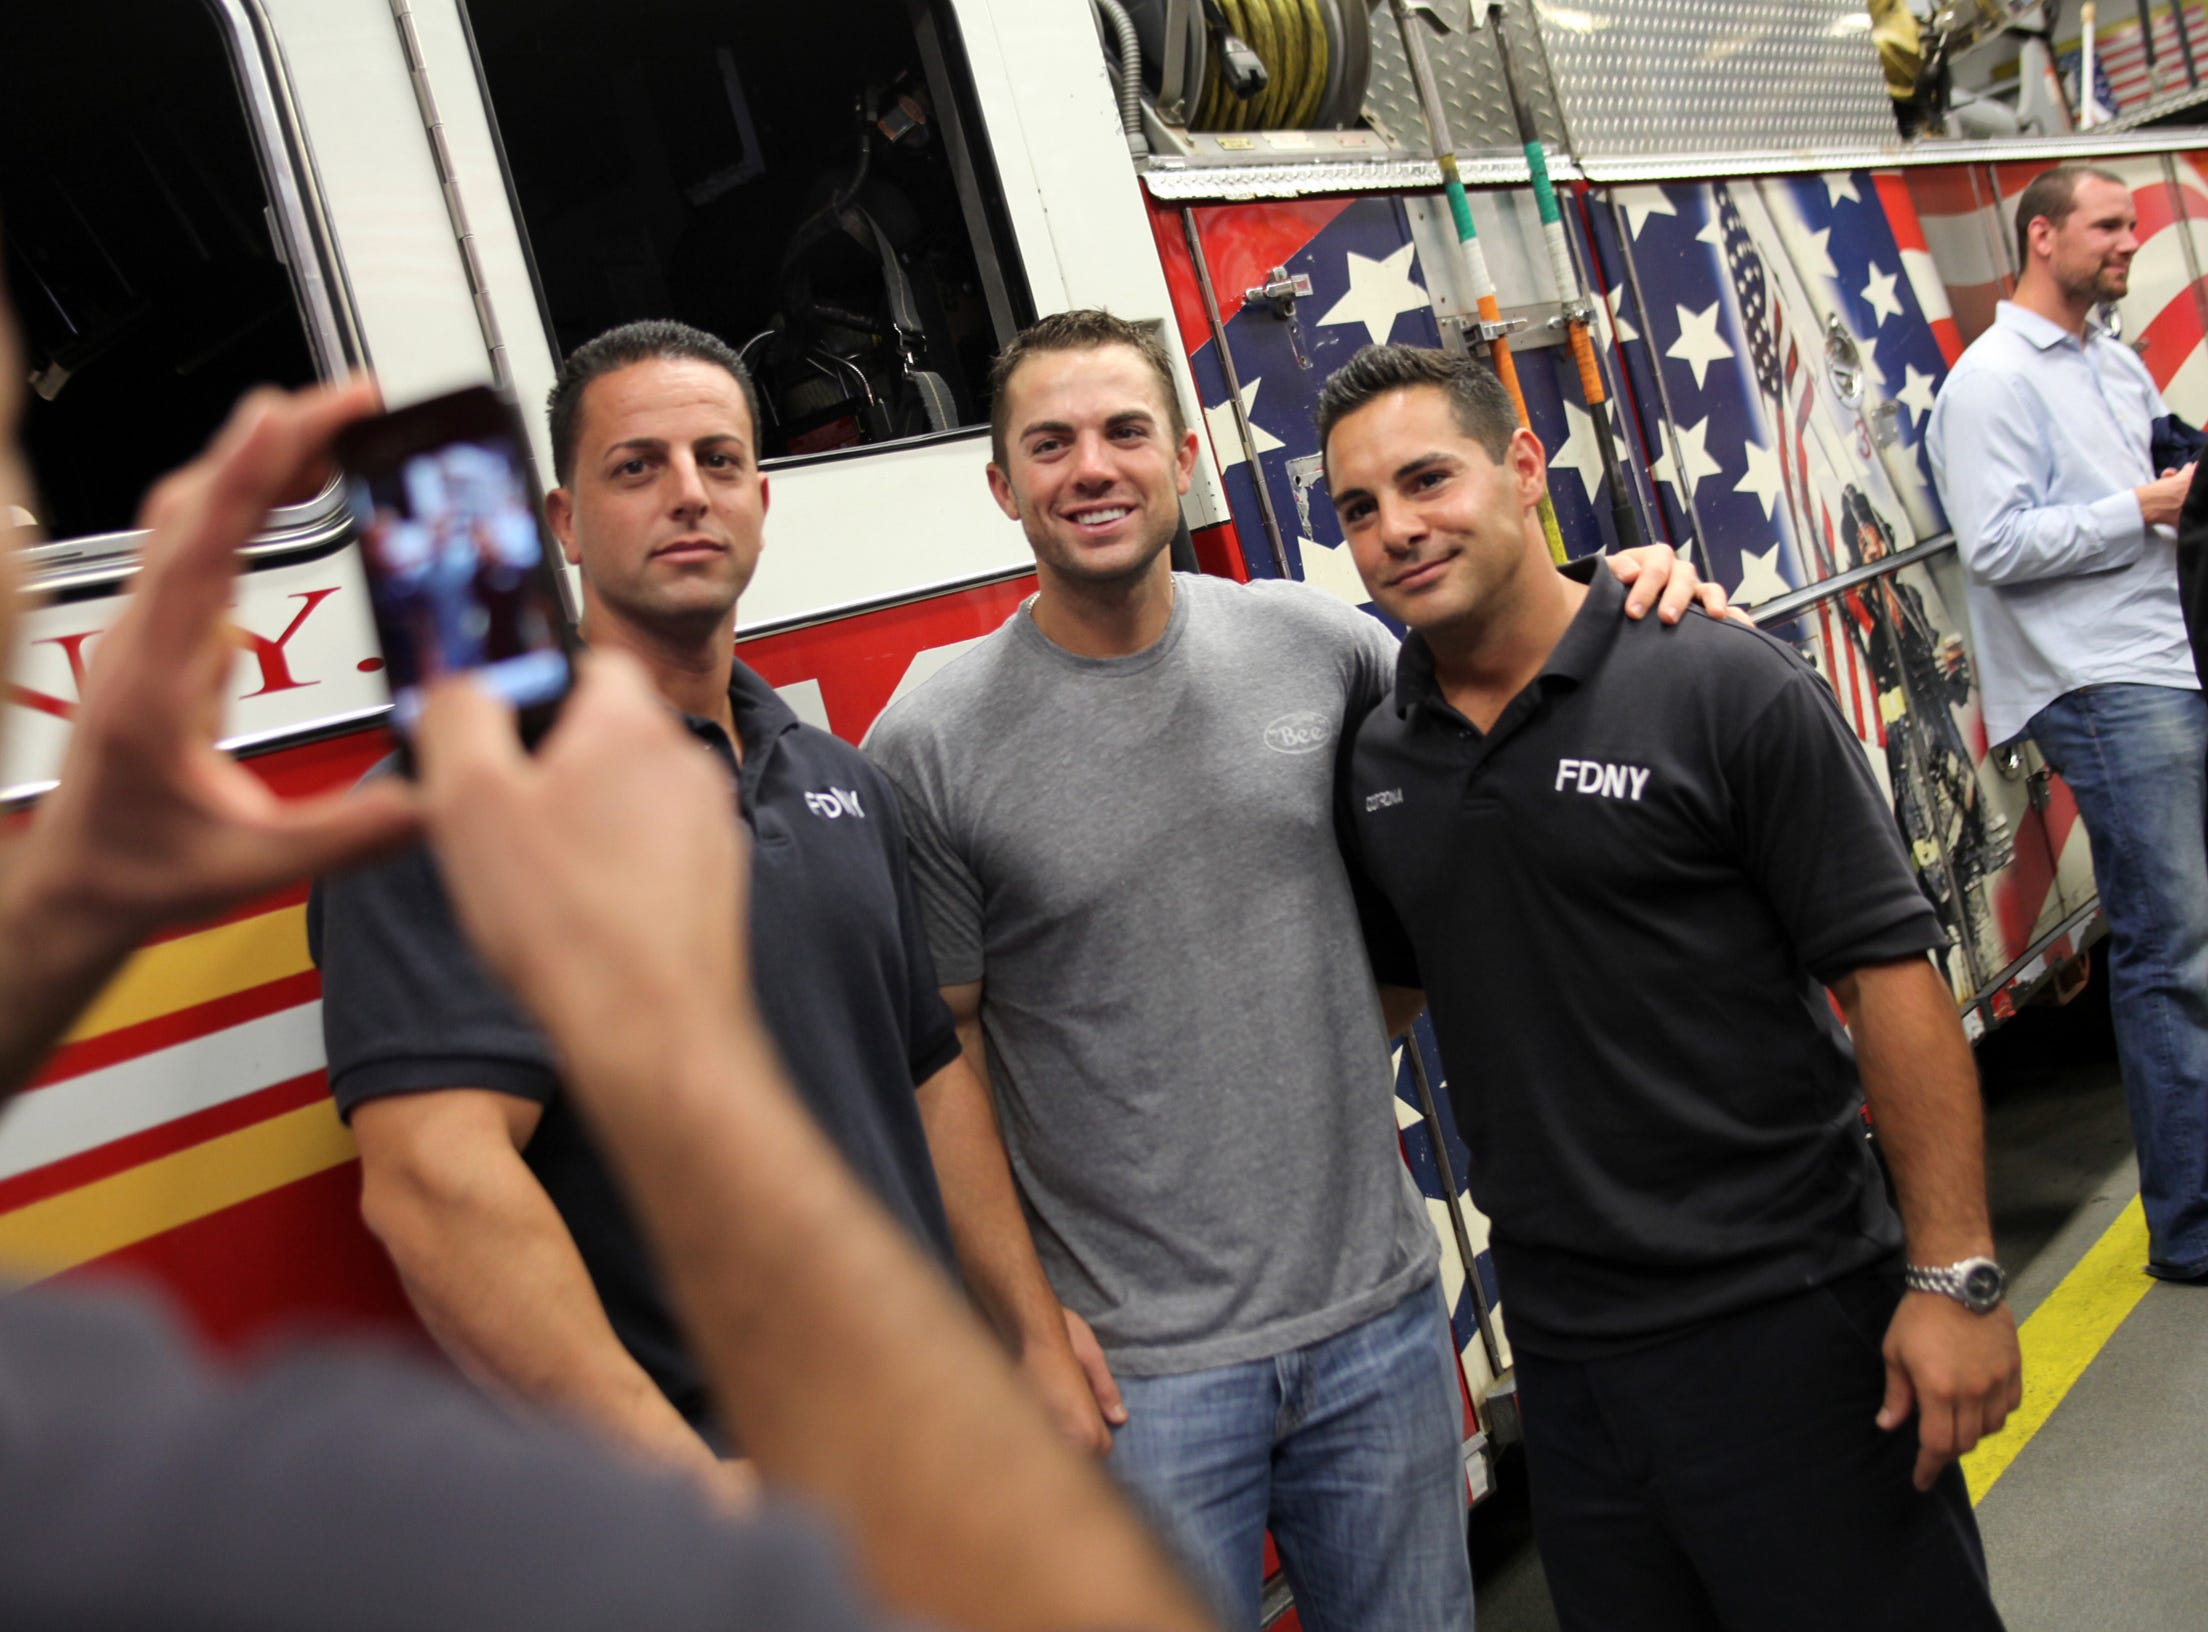 69623 New York 9/10/2010 METS WITH NYFD: Fire fighters Frank Sansonetti, left, and Sal Cotrona (cq), right pose for photos with David Wright of the Mets  during his visit to Ladder 10, Engine 10 (or the 10 house) in lower Manhattan Friday afternoon.